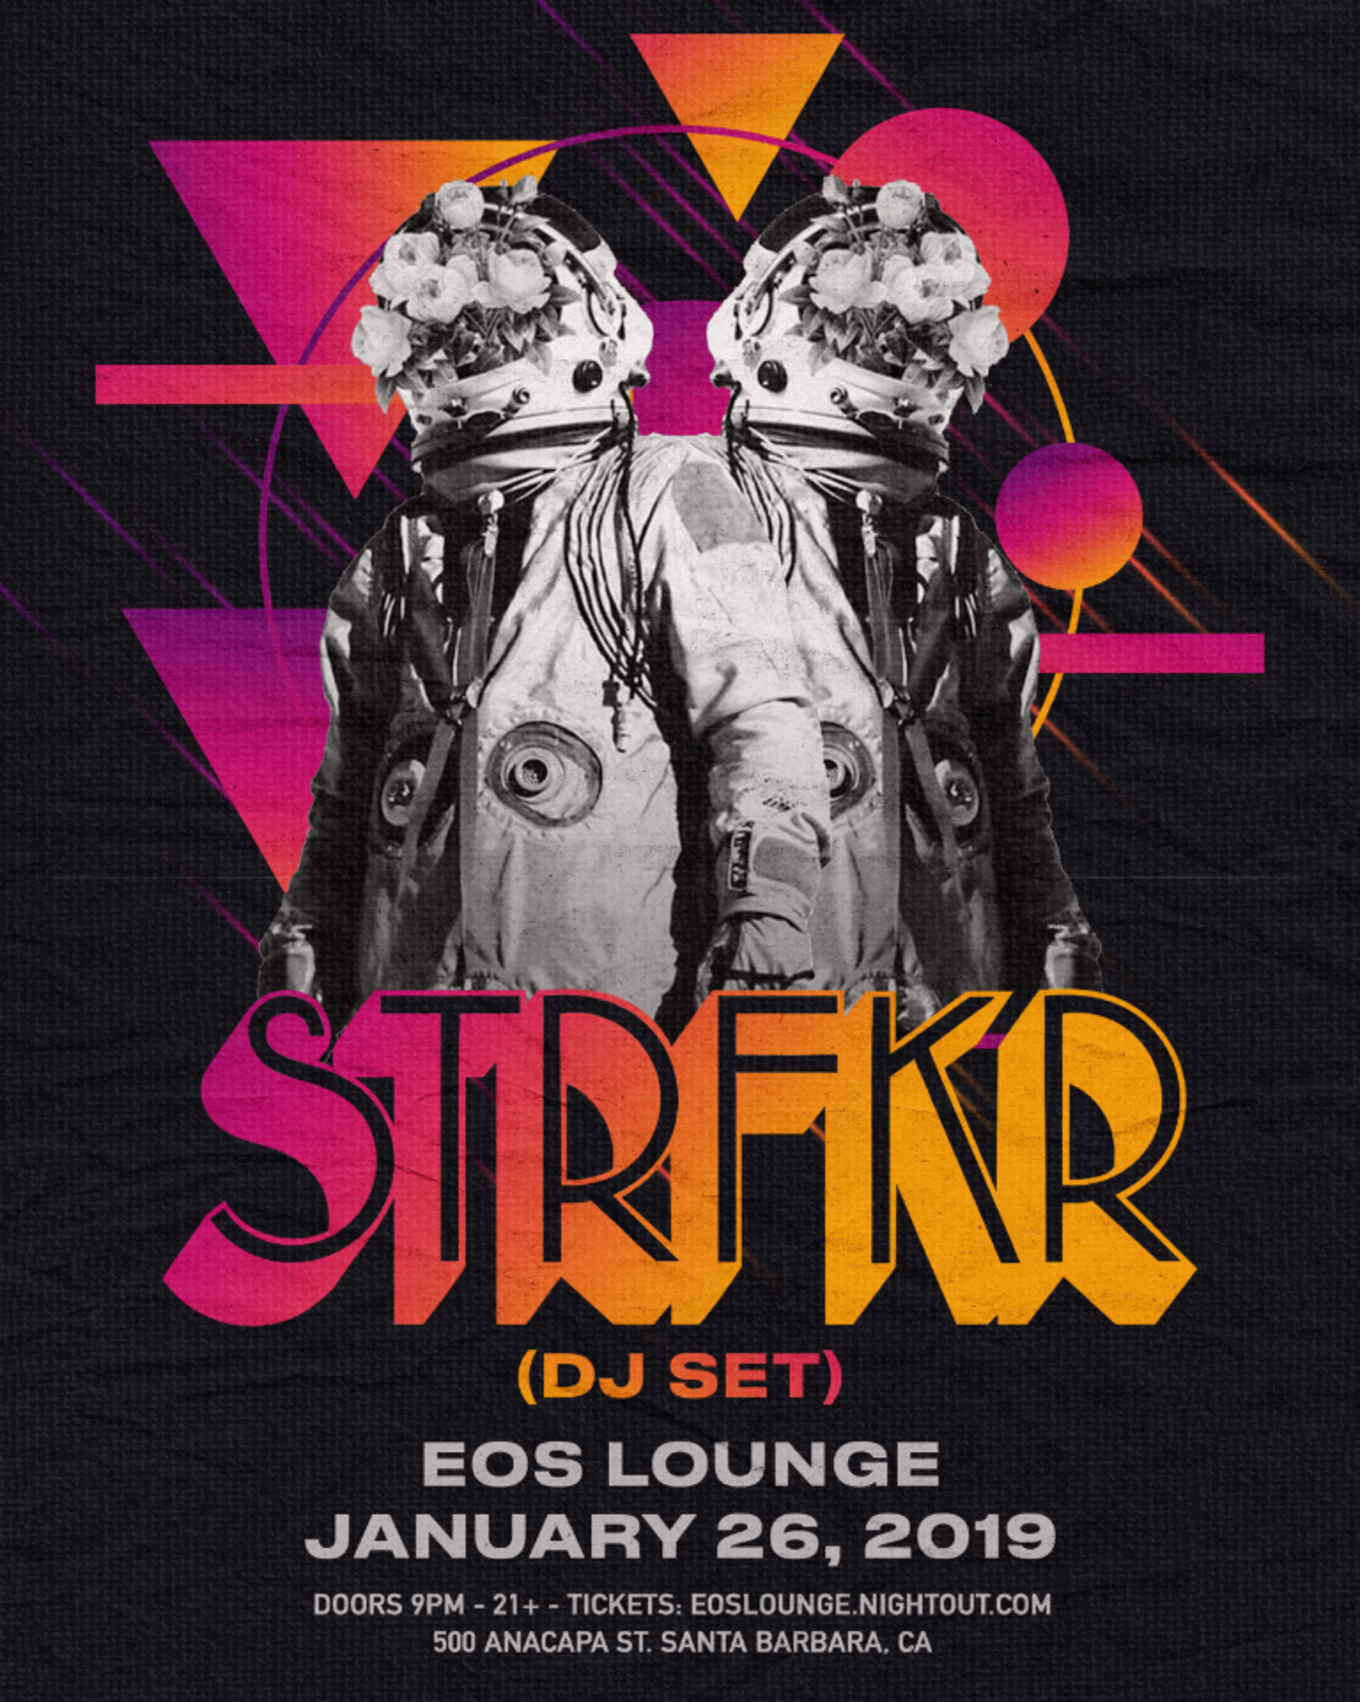 STRFKR at EOS Lounge 1 26 19 - Tickets - EOS Lounge, Santa